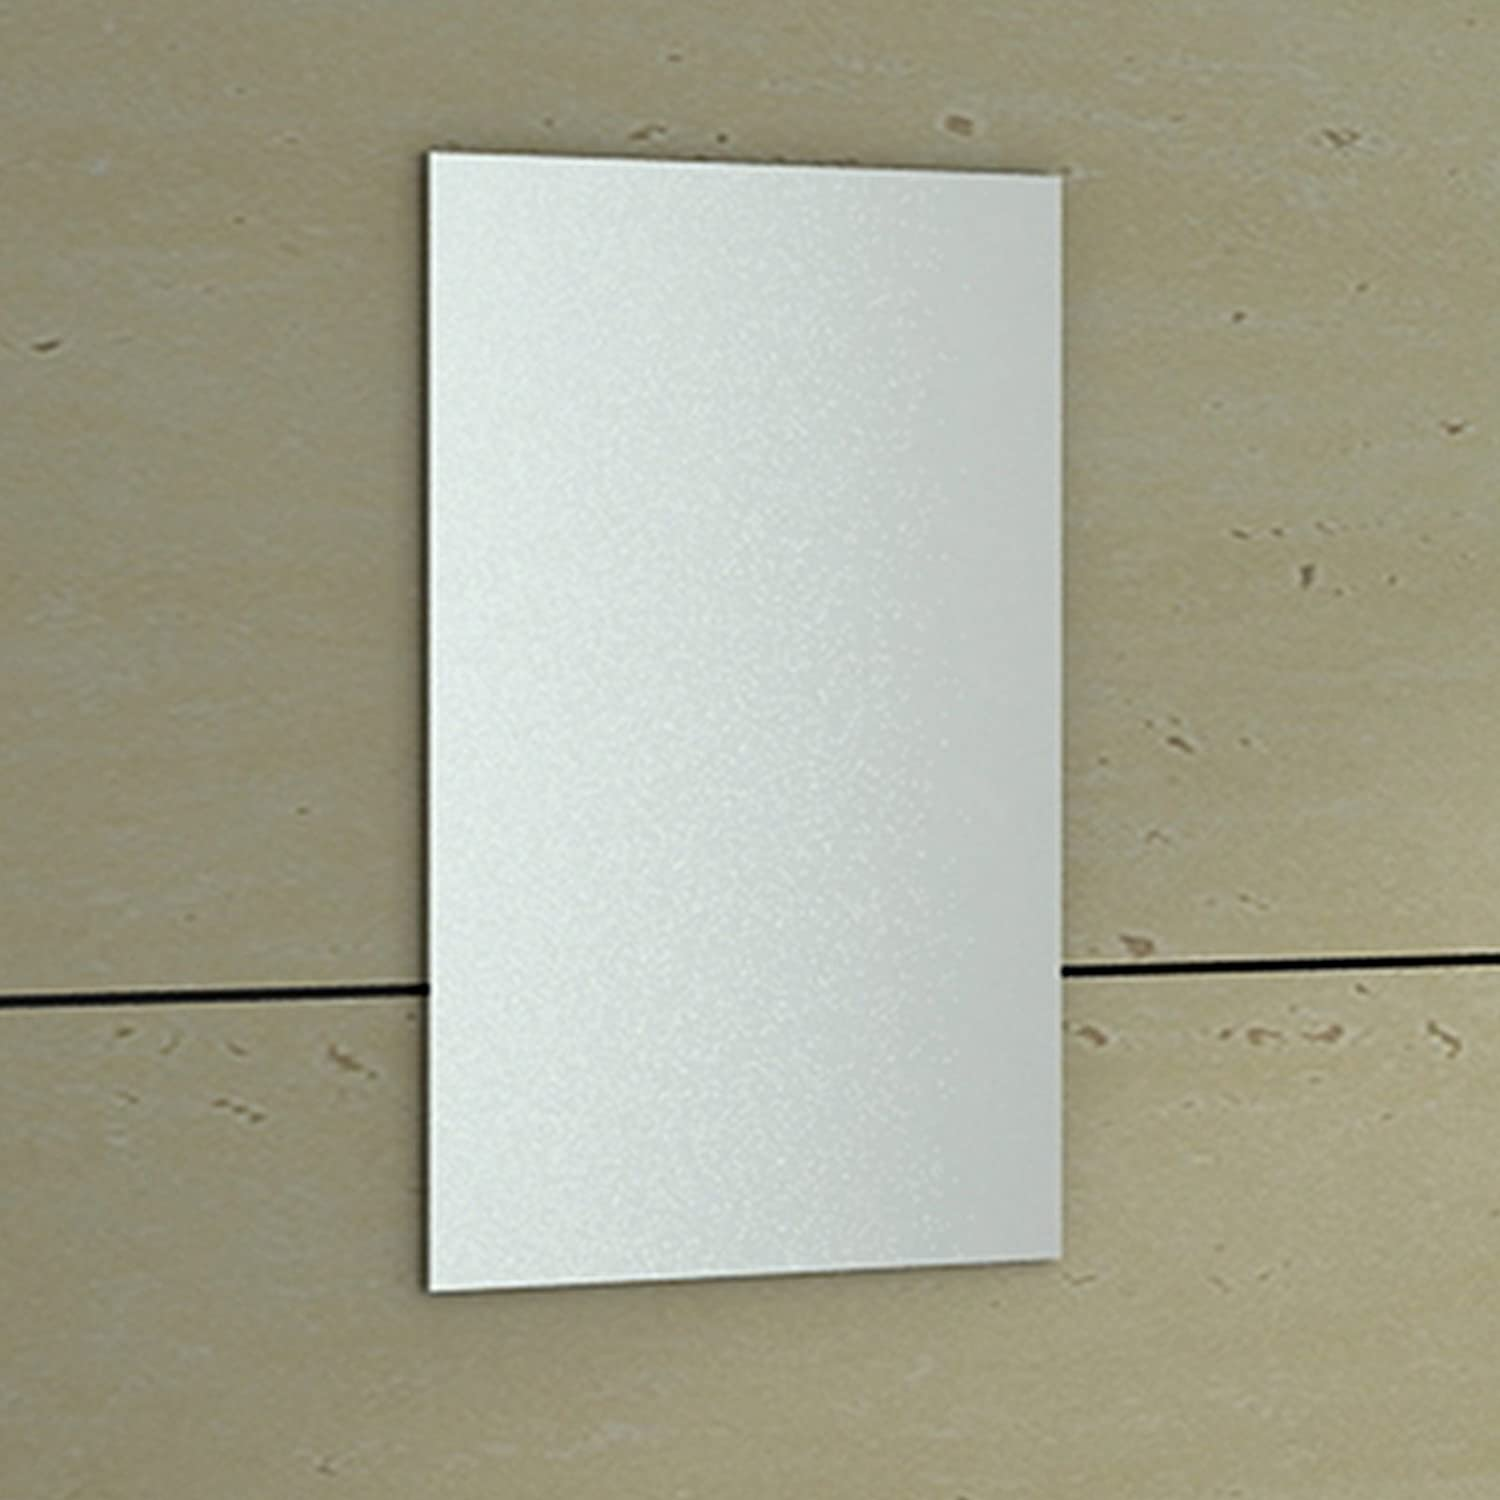 ENKI 400 X 600 Mm Rectangular Bathroom Wall Mounted Glass Frameless Mirror Bevelled HORIZON Amazoncouk DIY Tools